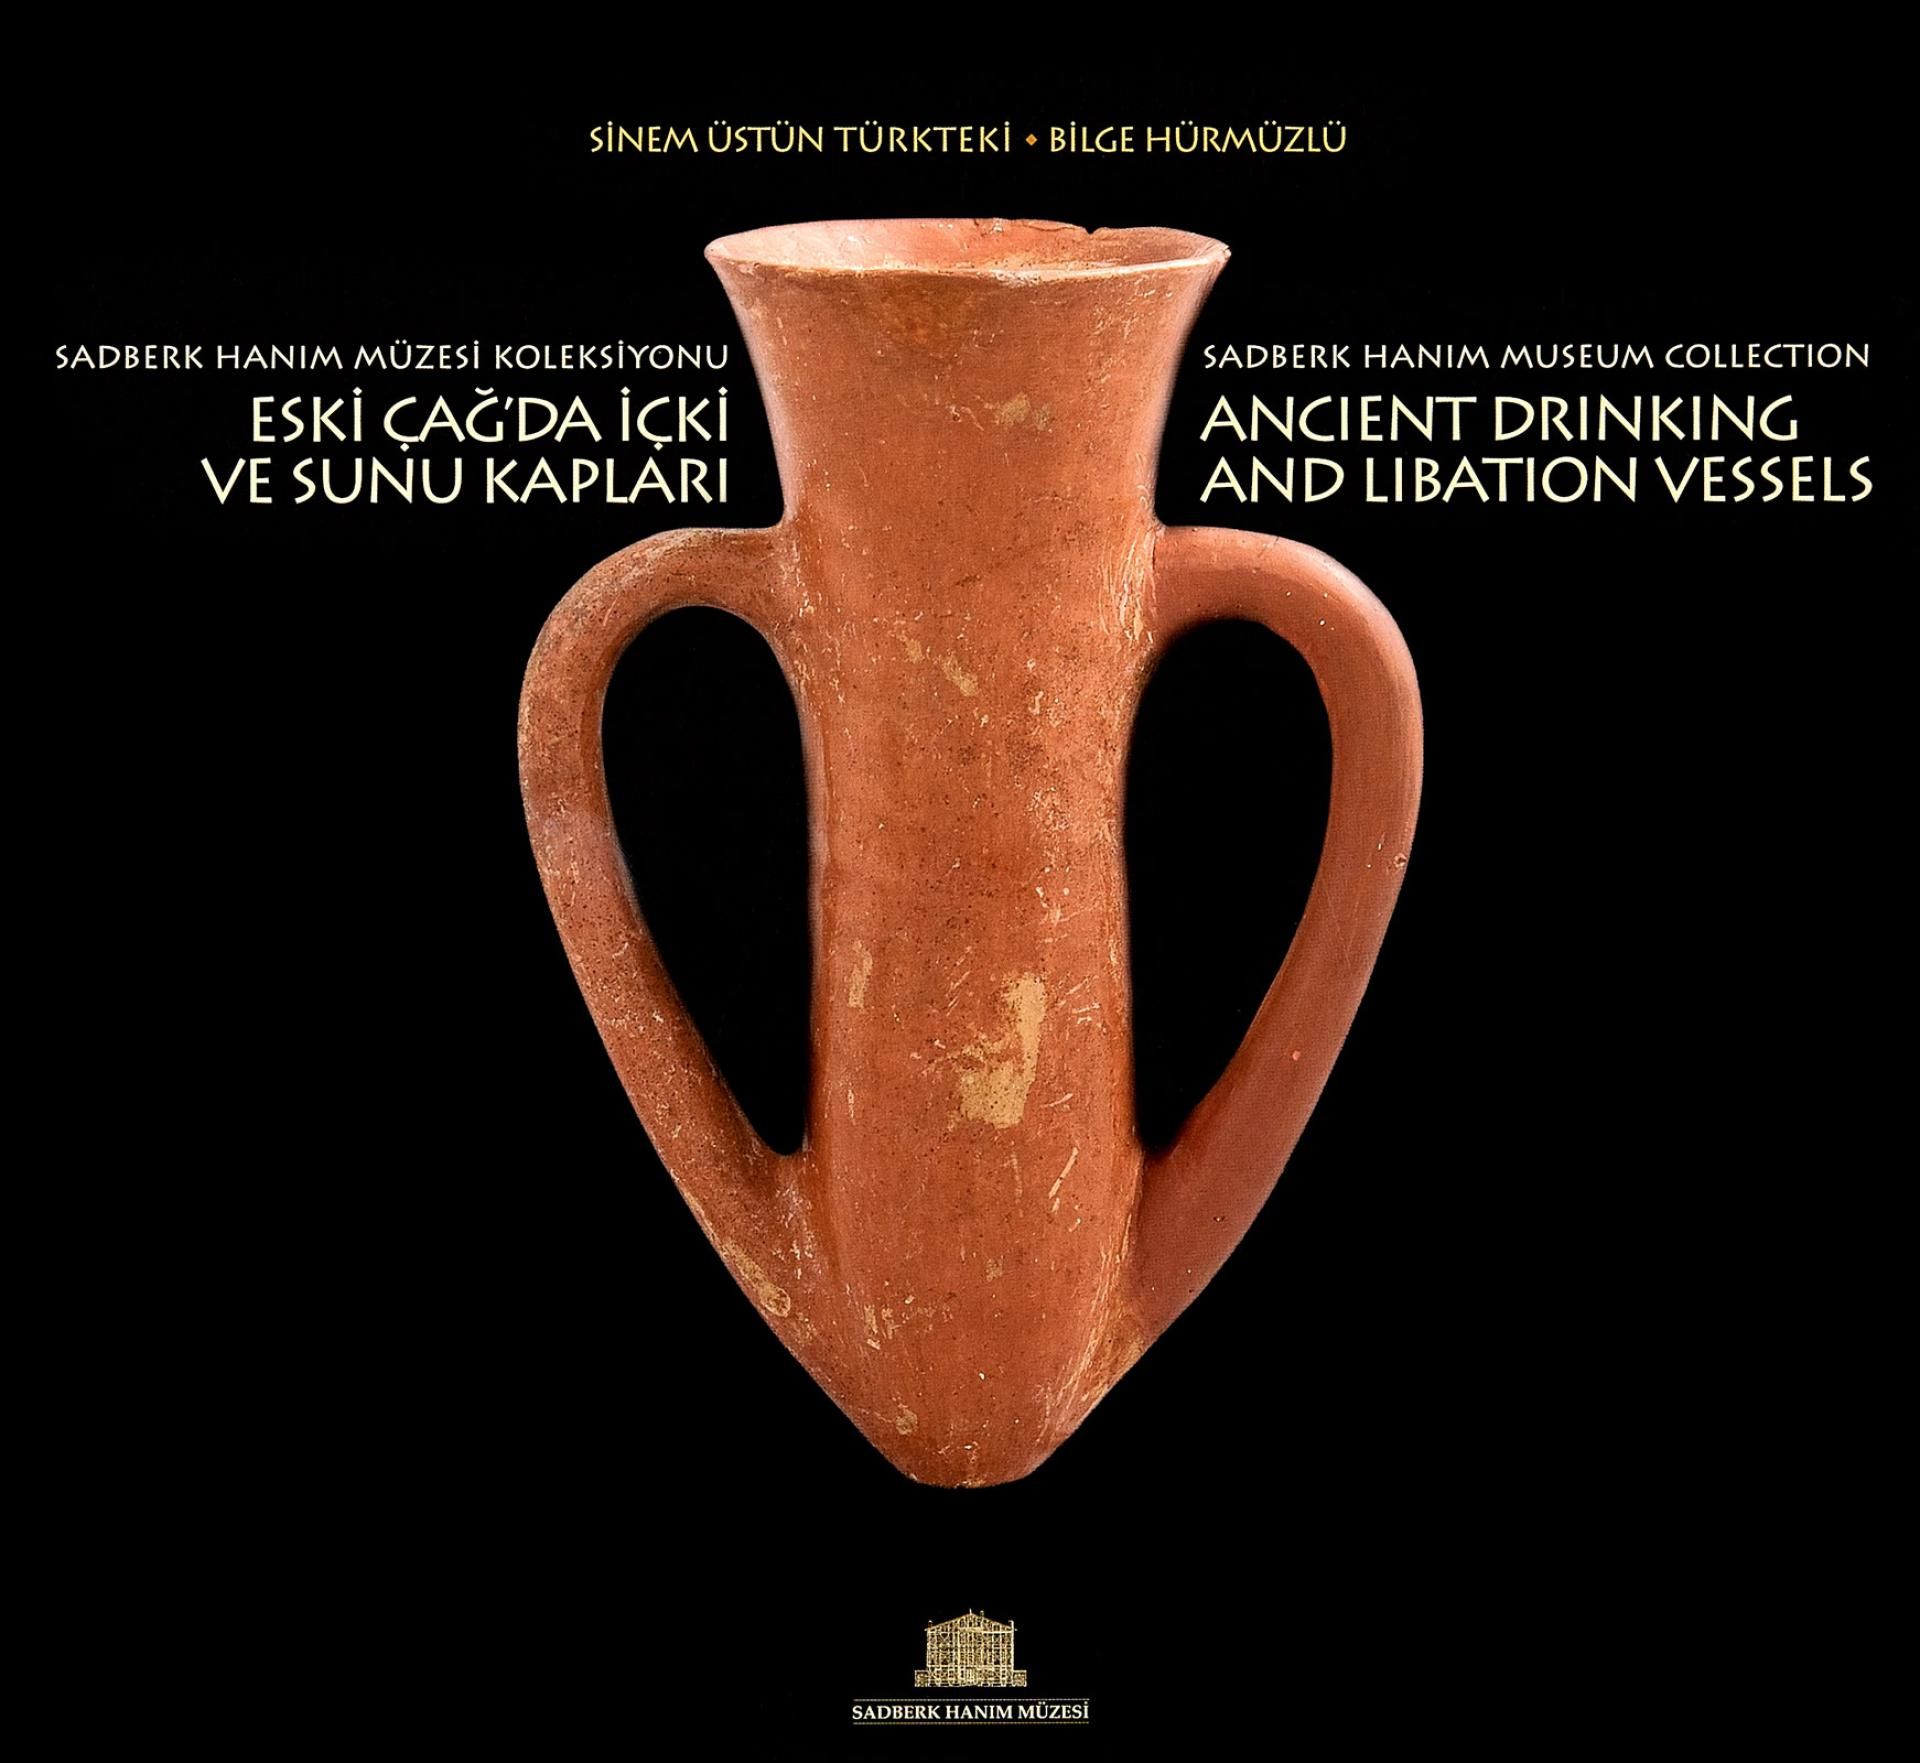 Ancient Drinking and Libation Vessels - Sadberk Hanım Museum Collection - EXHIBITIONS - Sadberk Hanım Museum